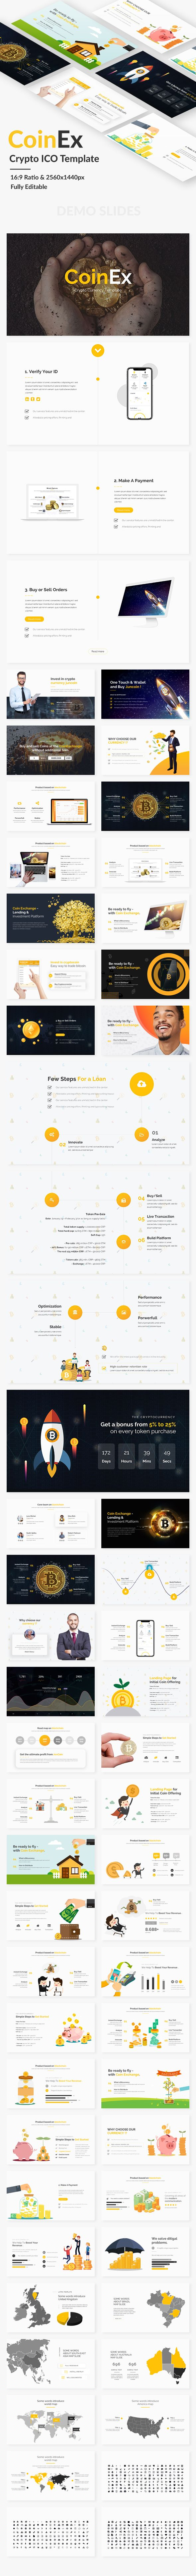 1952 best powerpoint template images on pinterest black man coin exchange and crypto currency powerpoint template ppt tech enterprise download toneelgroepblik Image collections